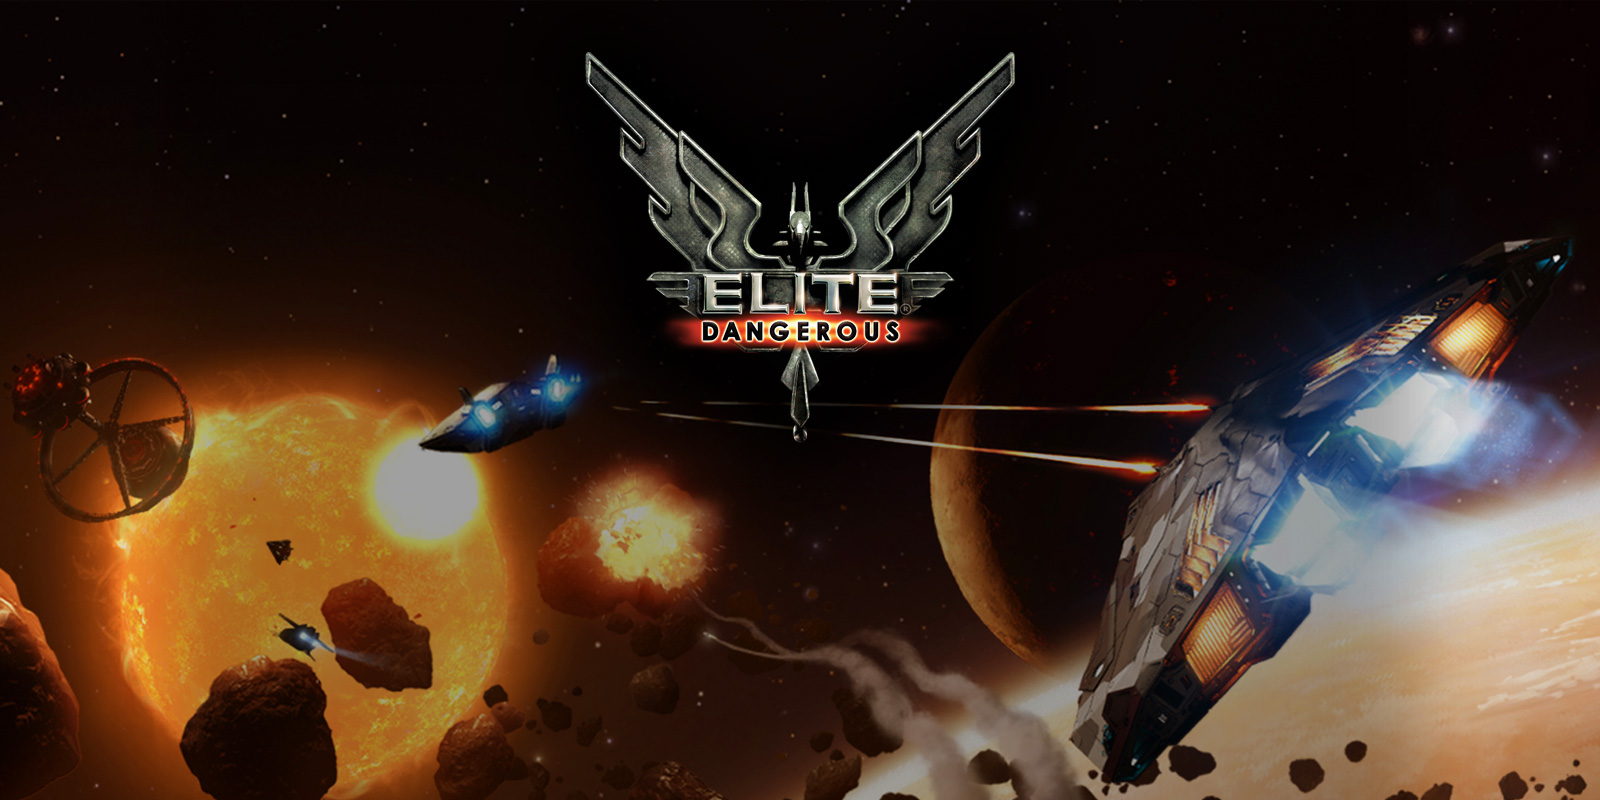 Elite: Dangerous telecharger gratuit de PC et Torrent